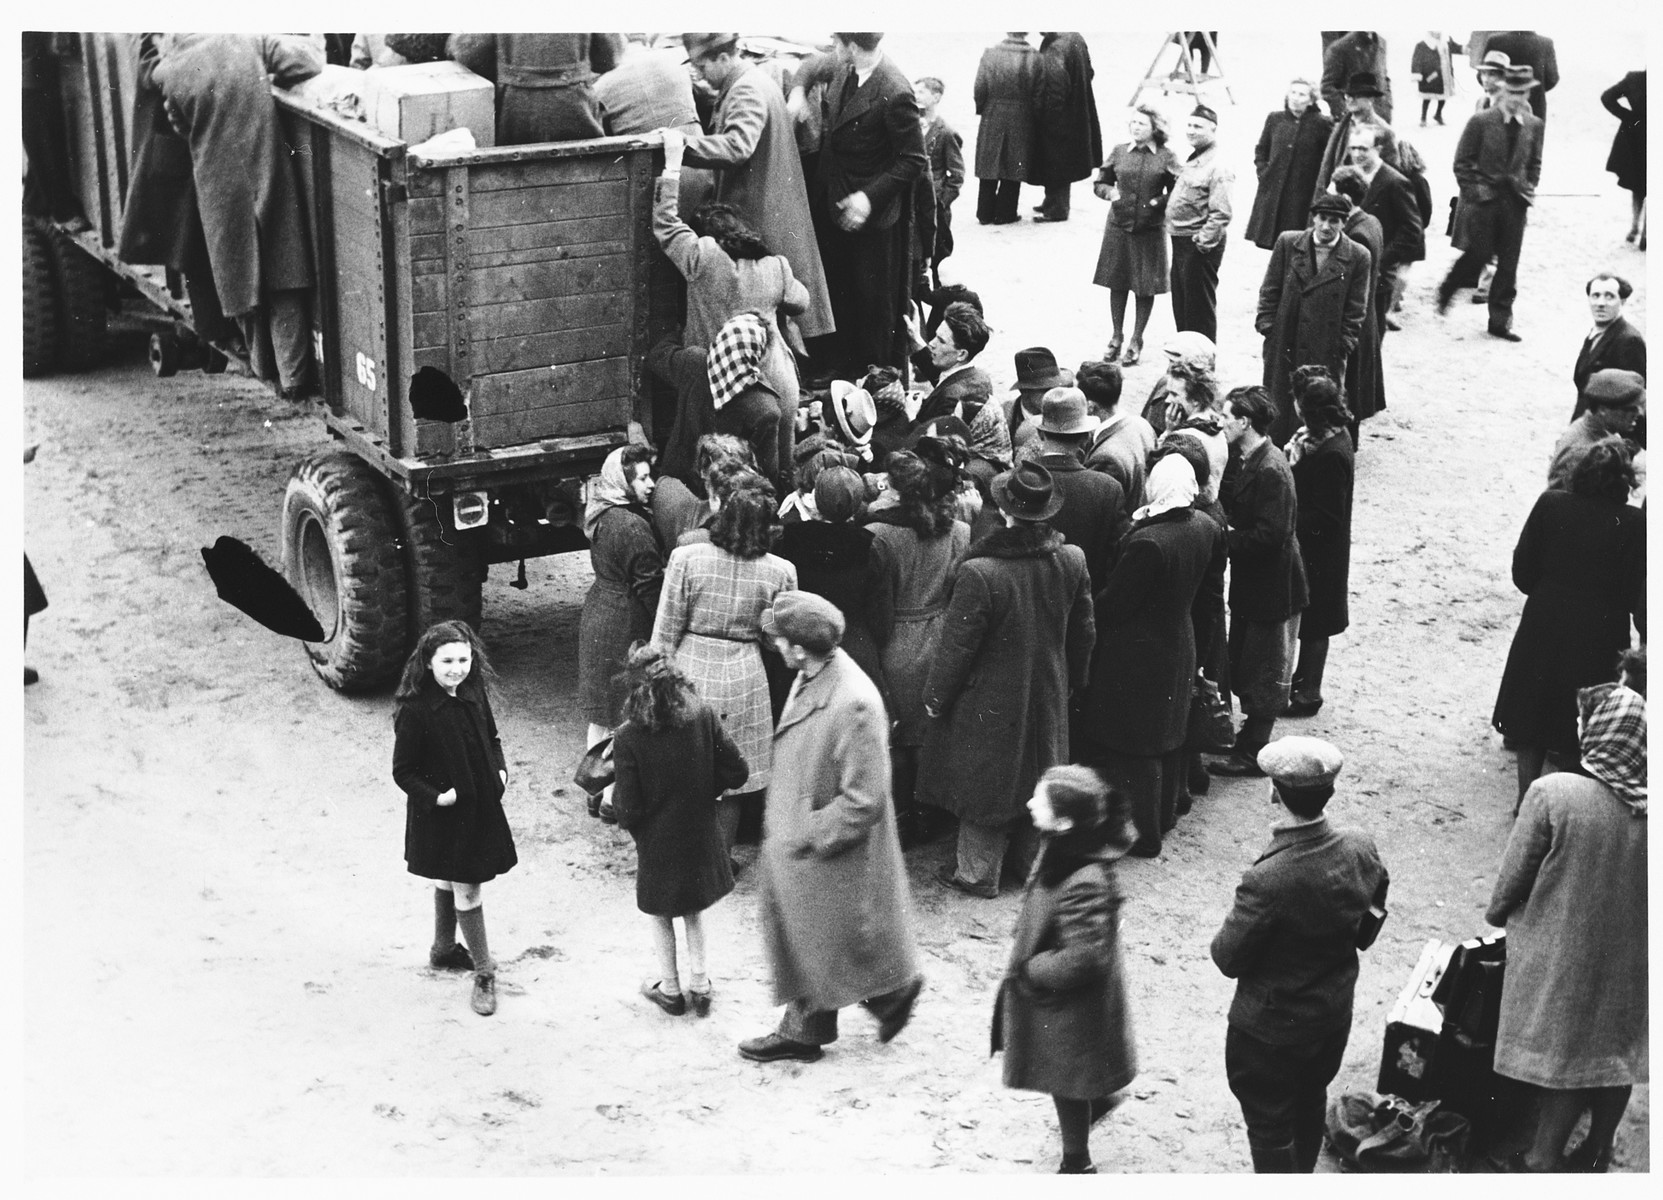 Jewish DPs board open trucks during their departure from the Schlachtensee displaced persons camp.